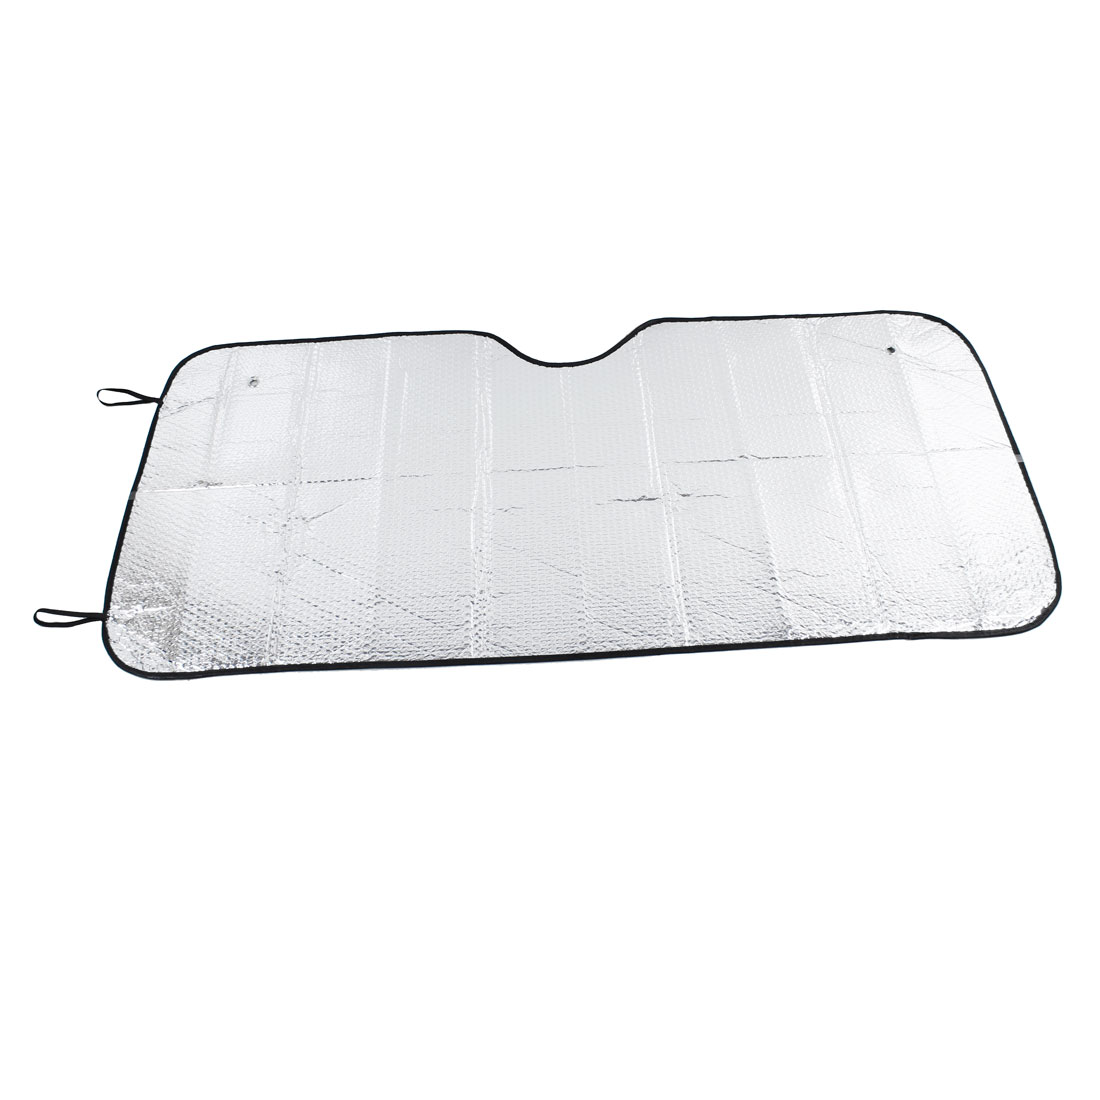 Foldable Silver Tone Aluminium Foil Exterior Car Side Sunshade Sun Visor Shield